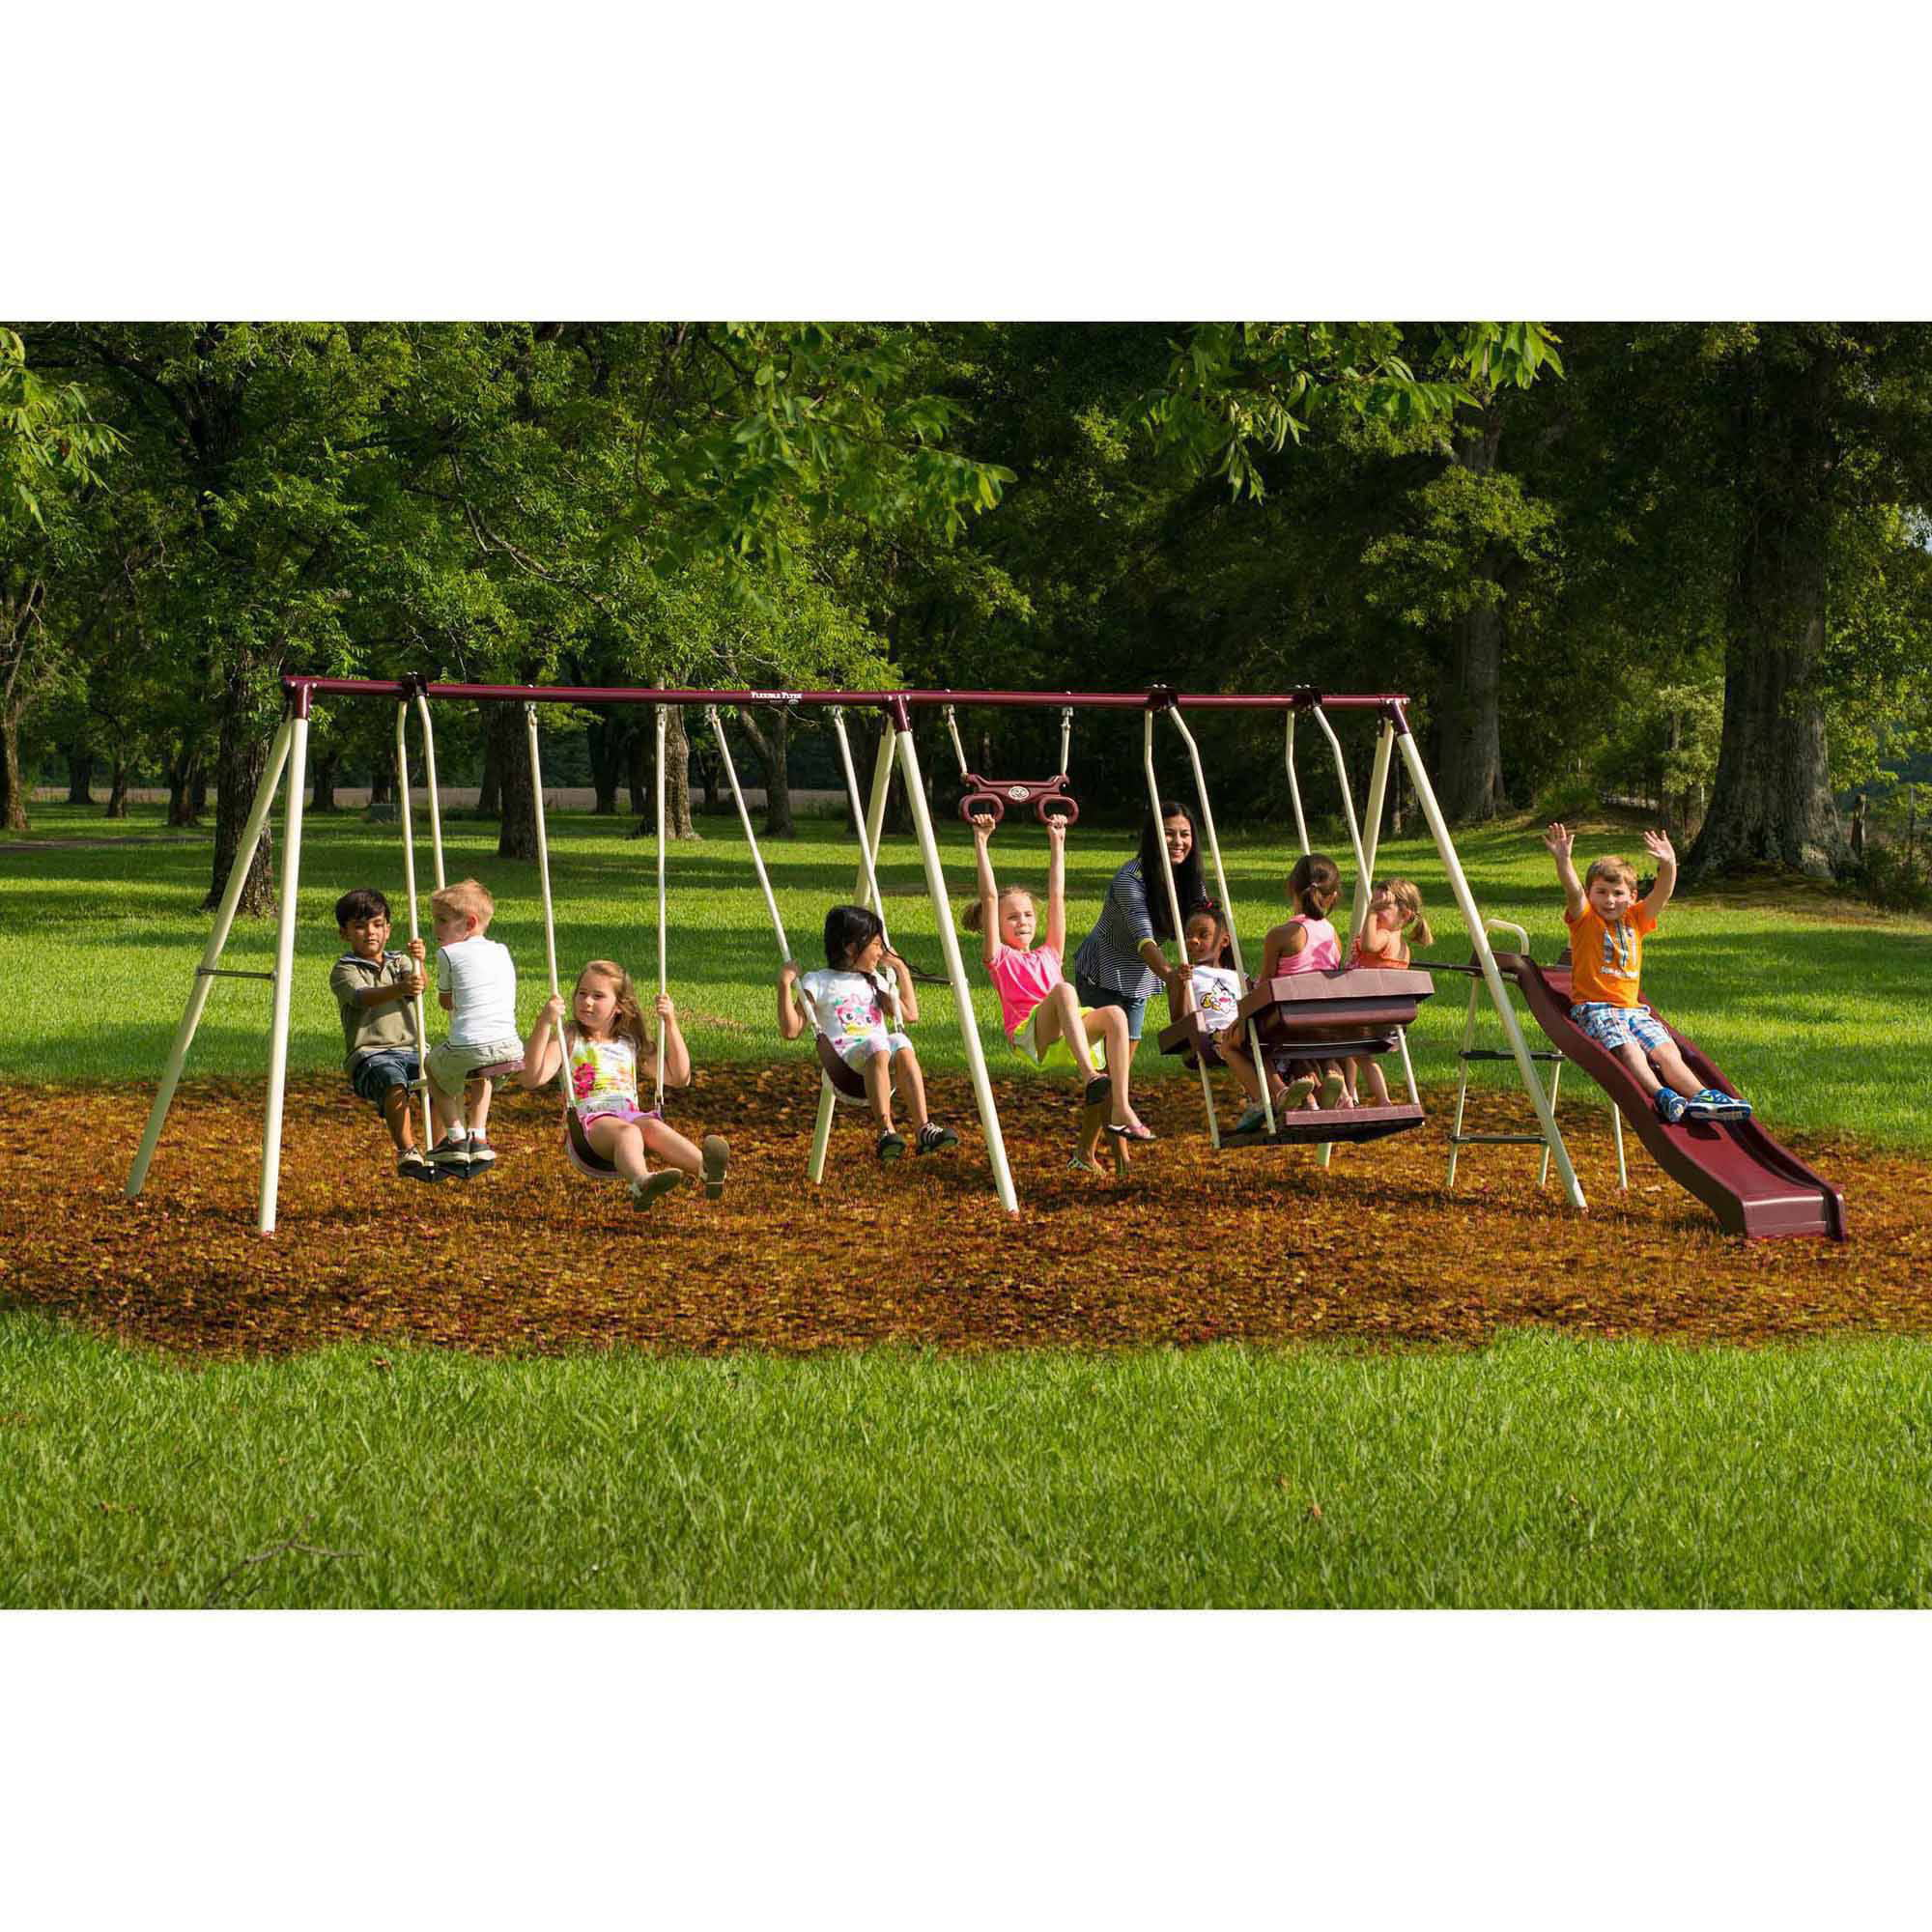 Flexible Flyer Play Park Metal Swing Set - Walmart.com ...